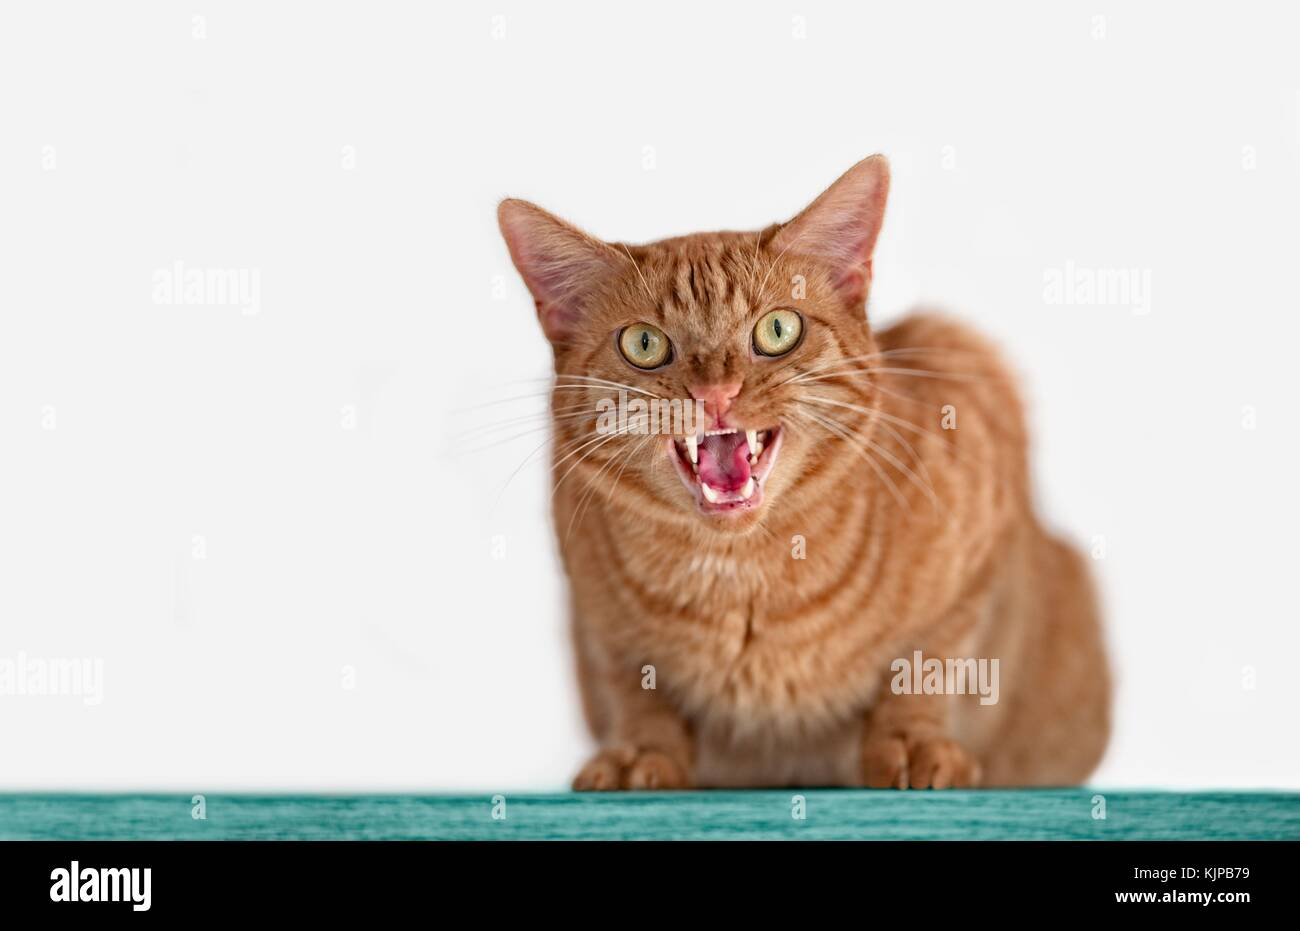 Angry ginger cat hissing to the camera - Stock Image